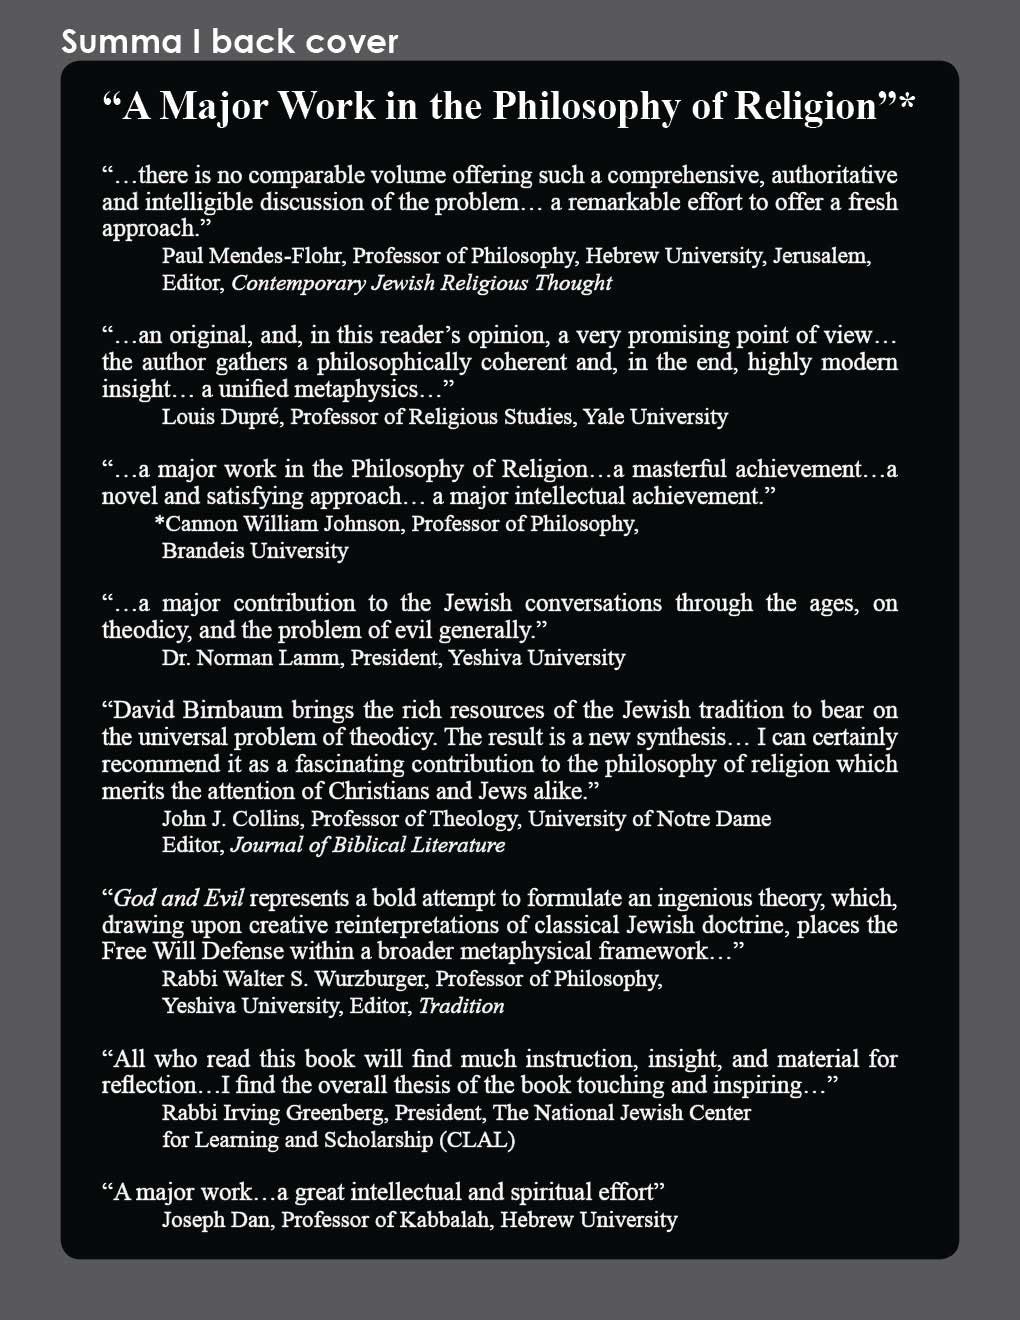 Book Back Cover featuring David Birnbaum Summa Metaphysica Philosophy Theory